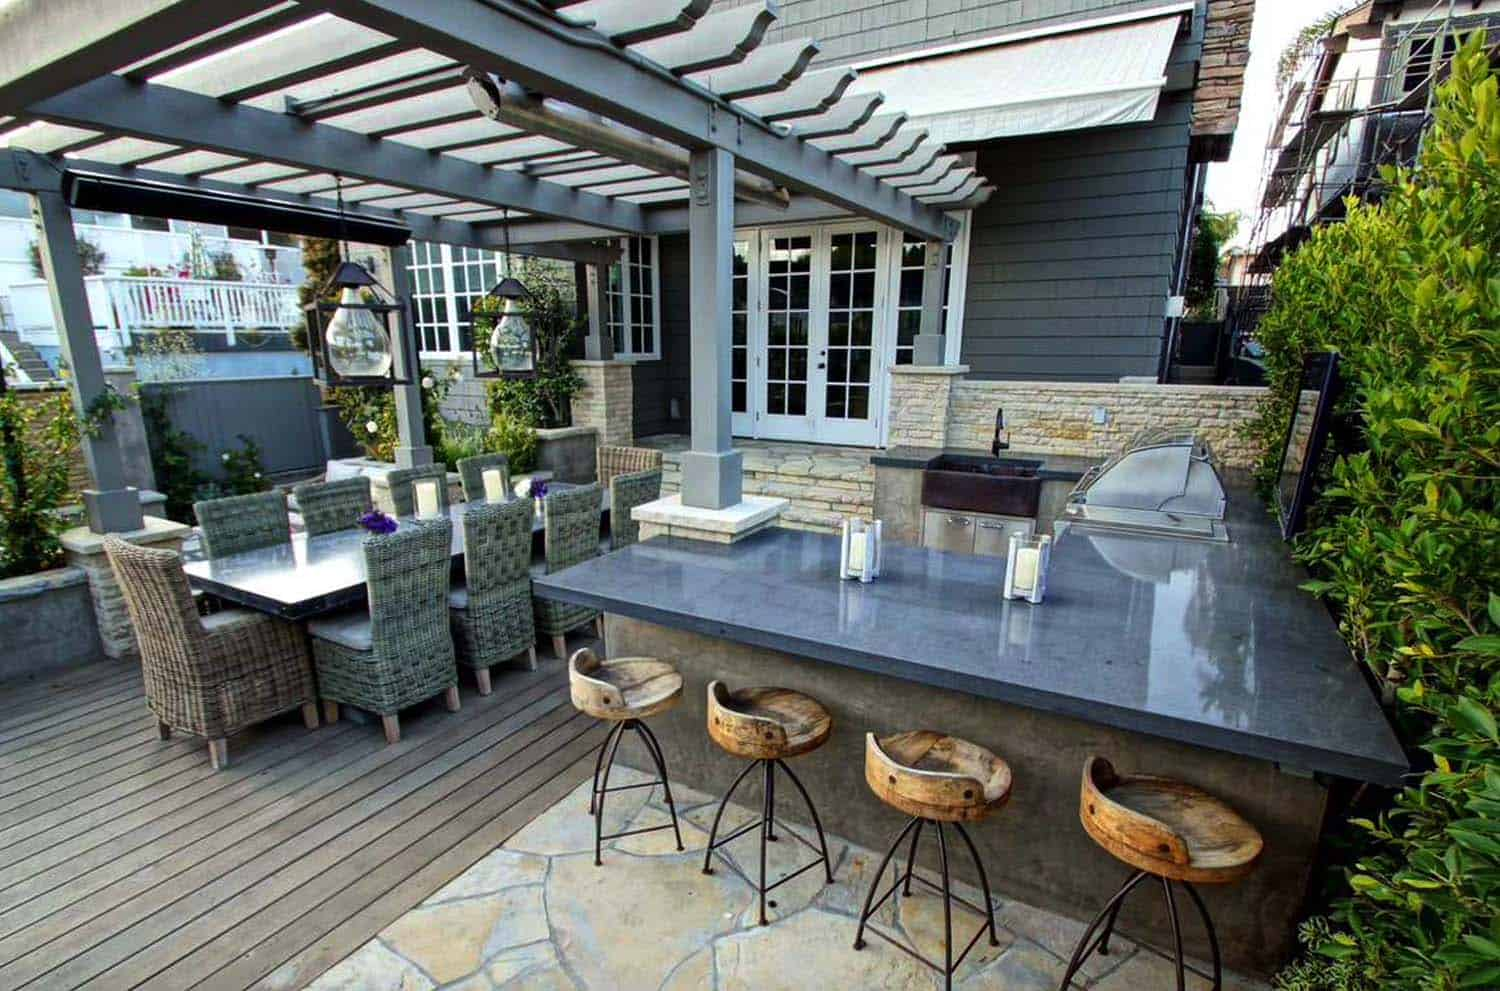 Outdoor Kitchens-Bars Entertaining-10-1 Kindesign.jpg